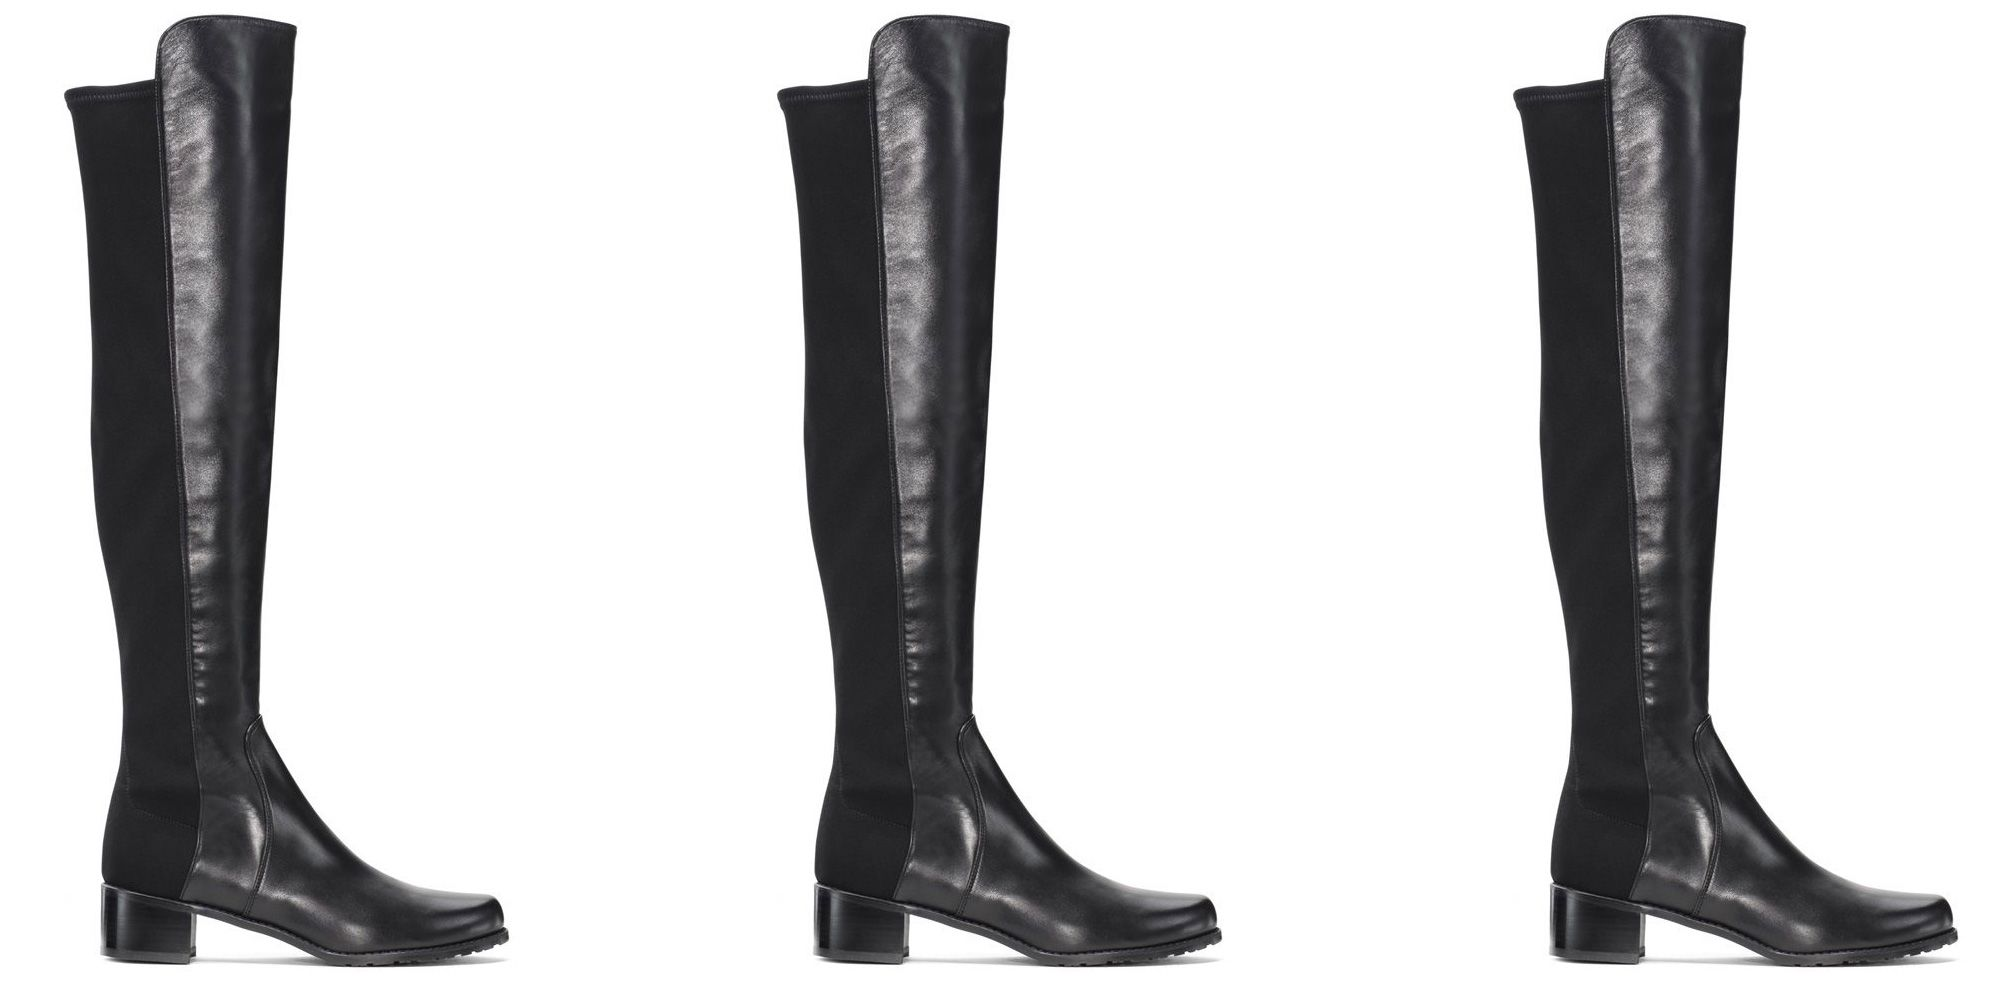 74eaaa8e602d Stuart Weitzman Over the Knee Boots - Stuart Weitzman Boots Review